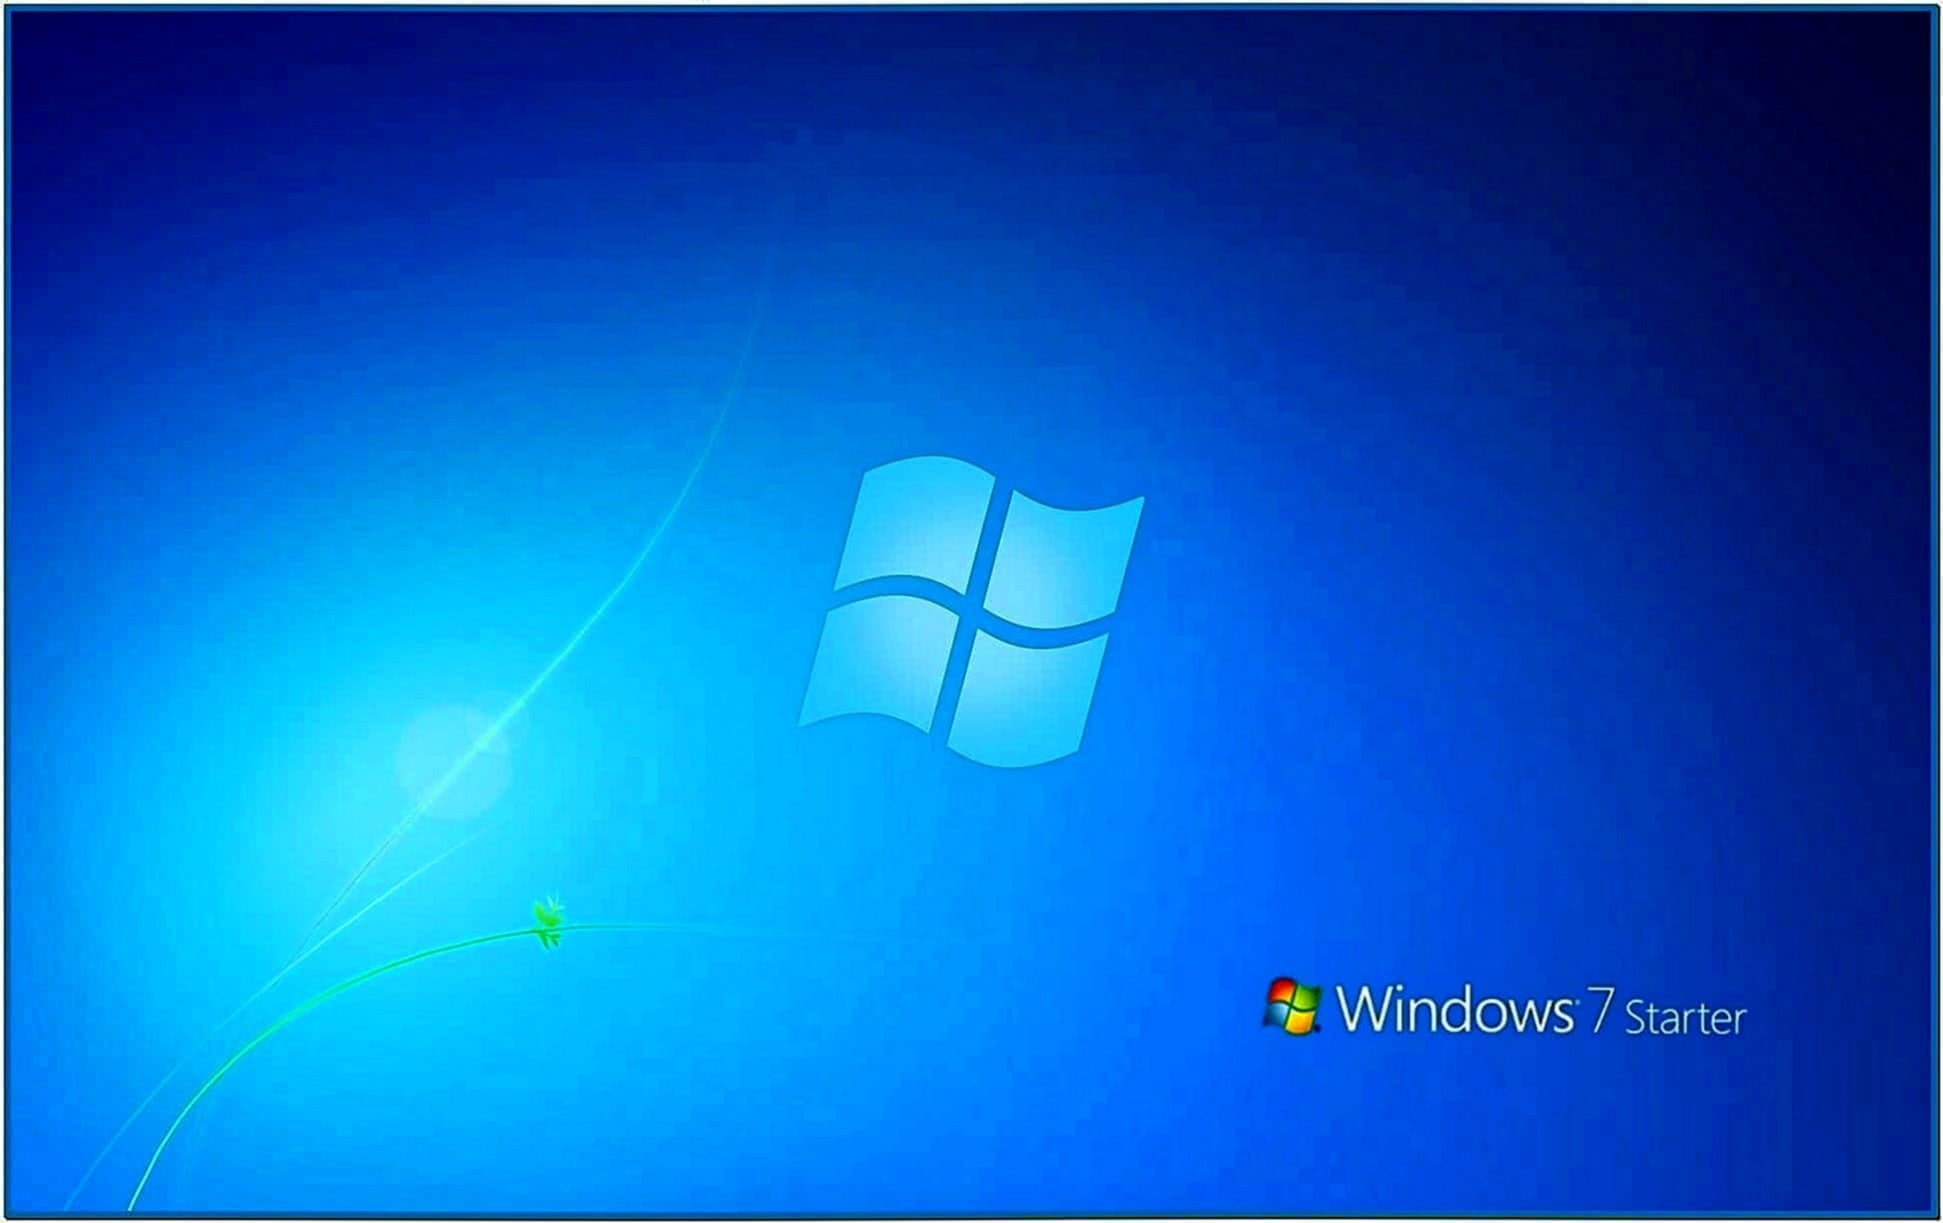 Screensavers windows 7 home basic